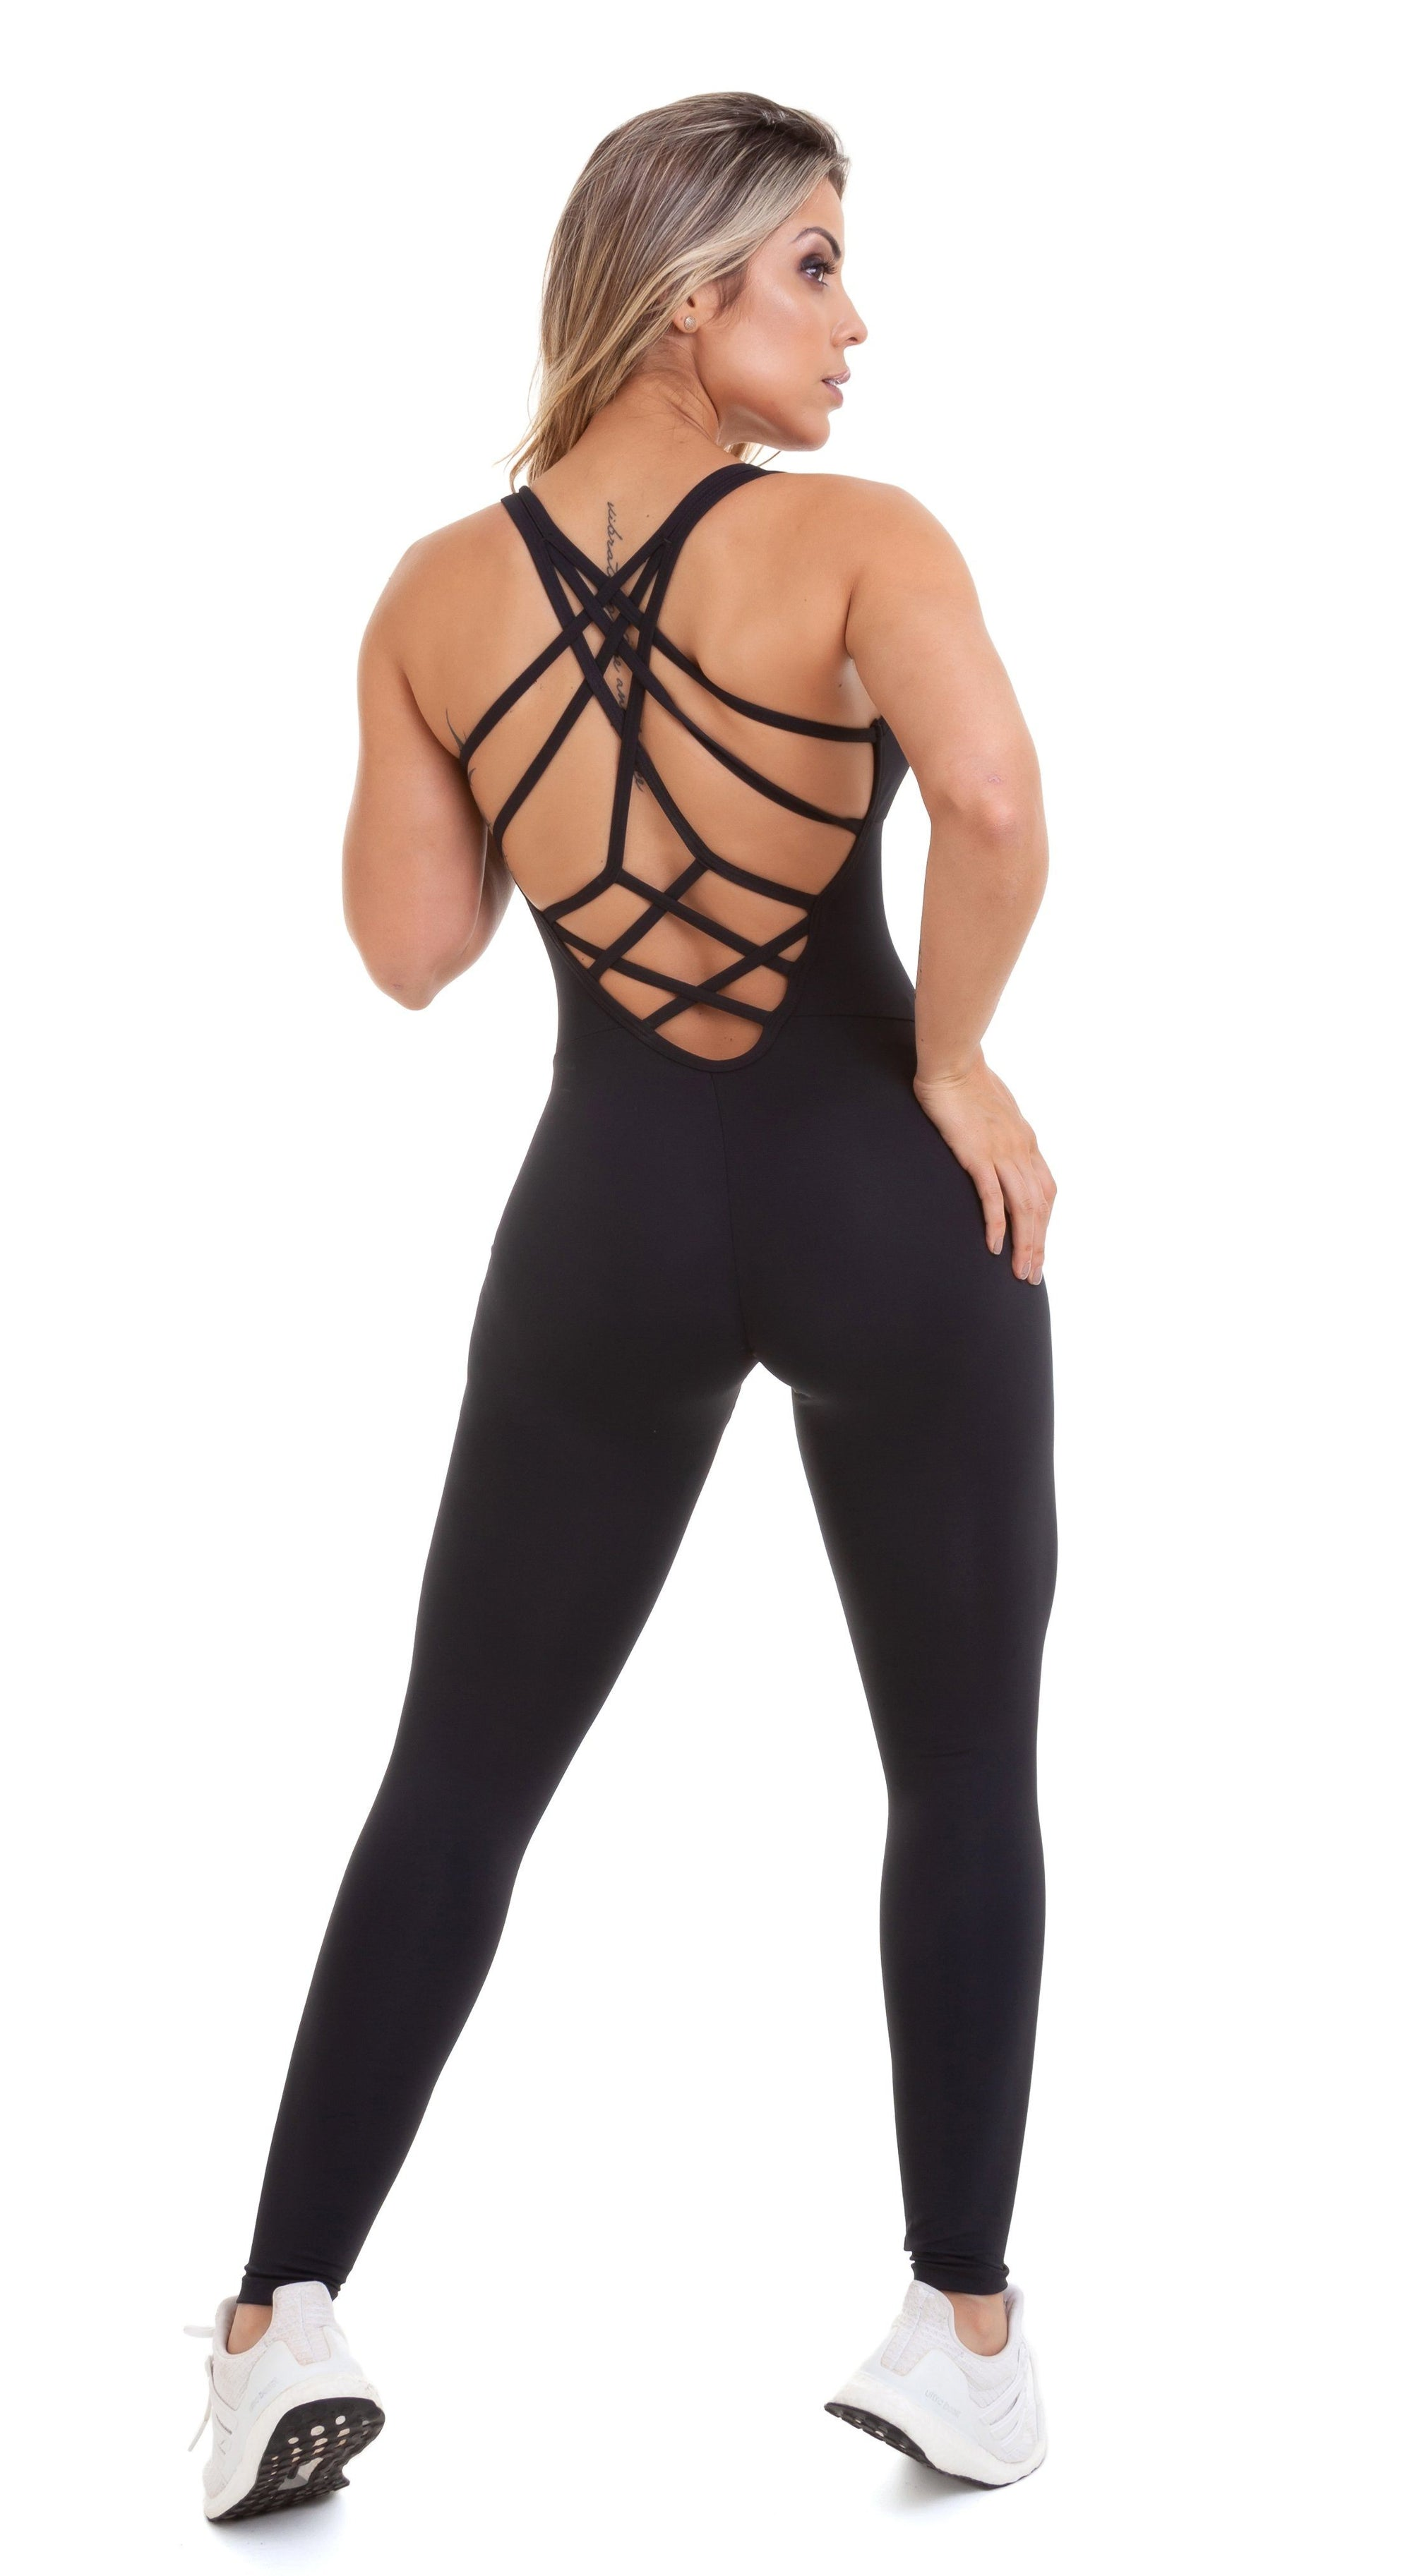 Brazilian Workout Jumpsuit - NZ Fit Goddess Black Bodysuit